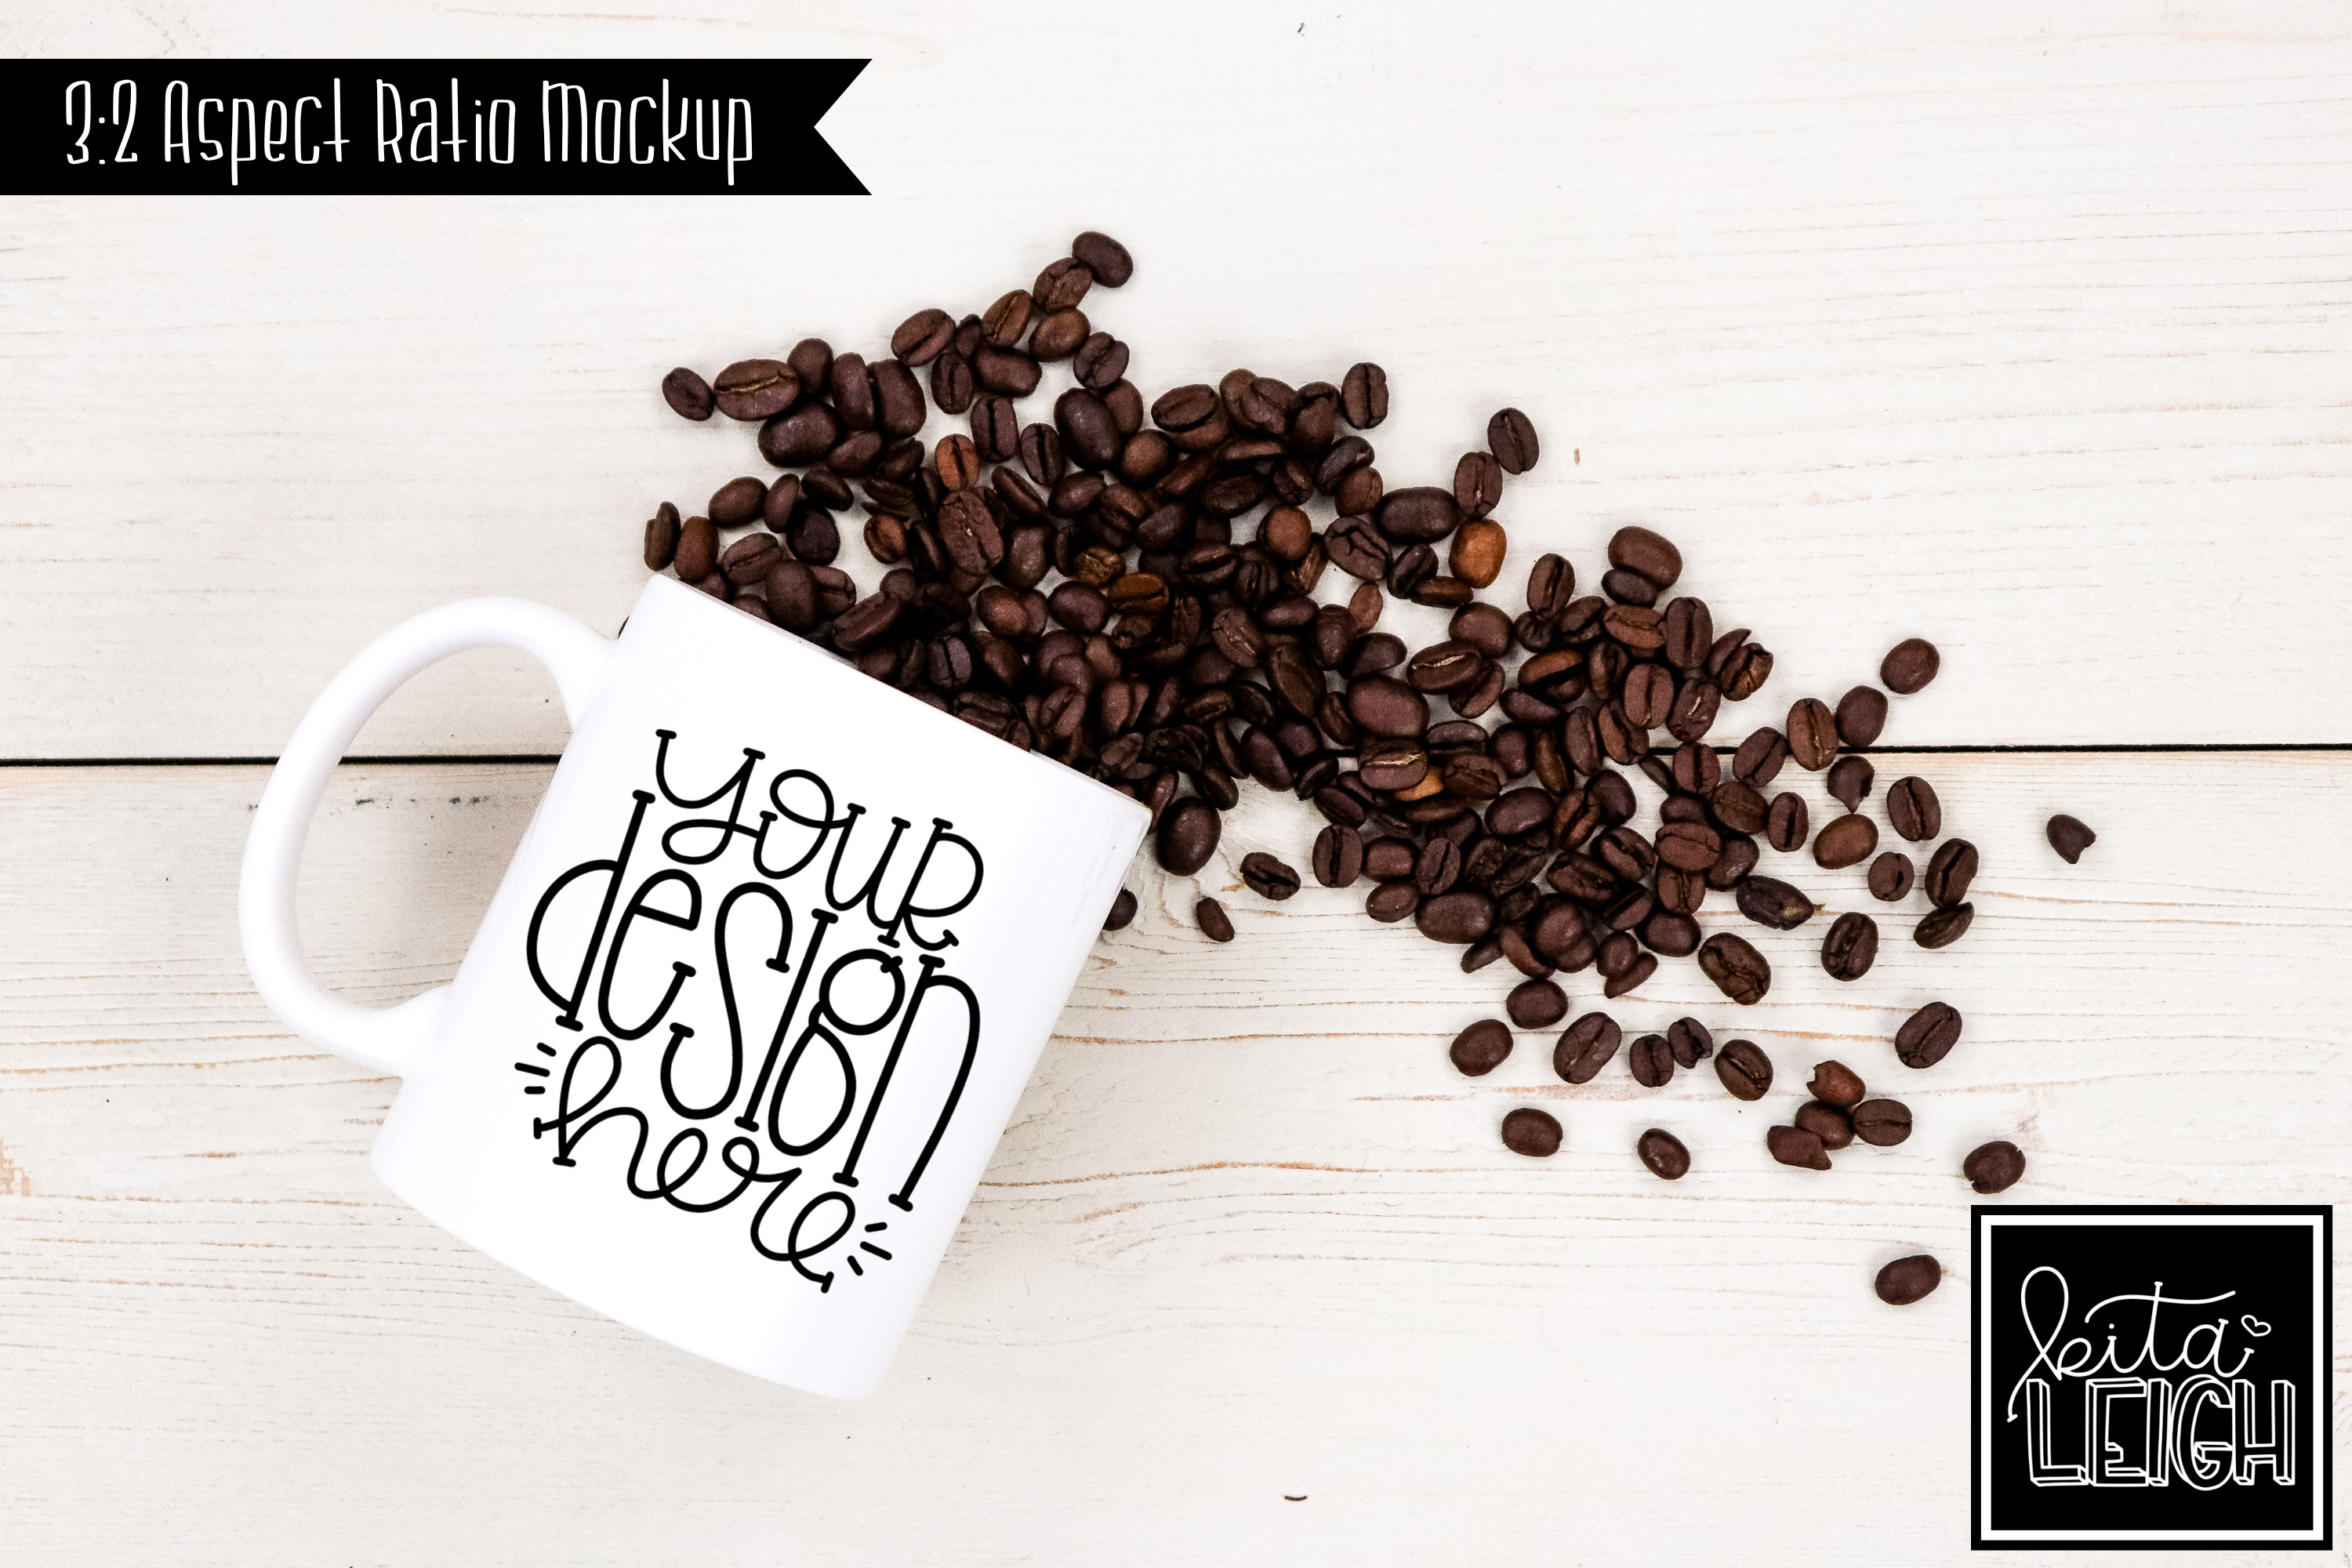 11 oz Mug Mockup with Chocolate, Coffee, Tea, and Mallows example image 4